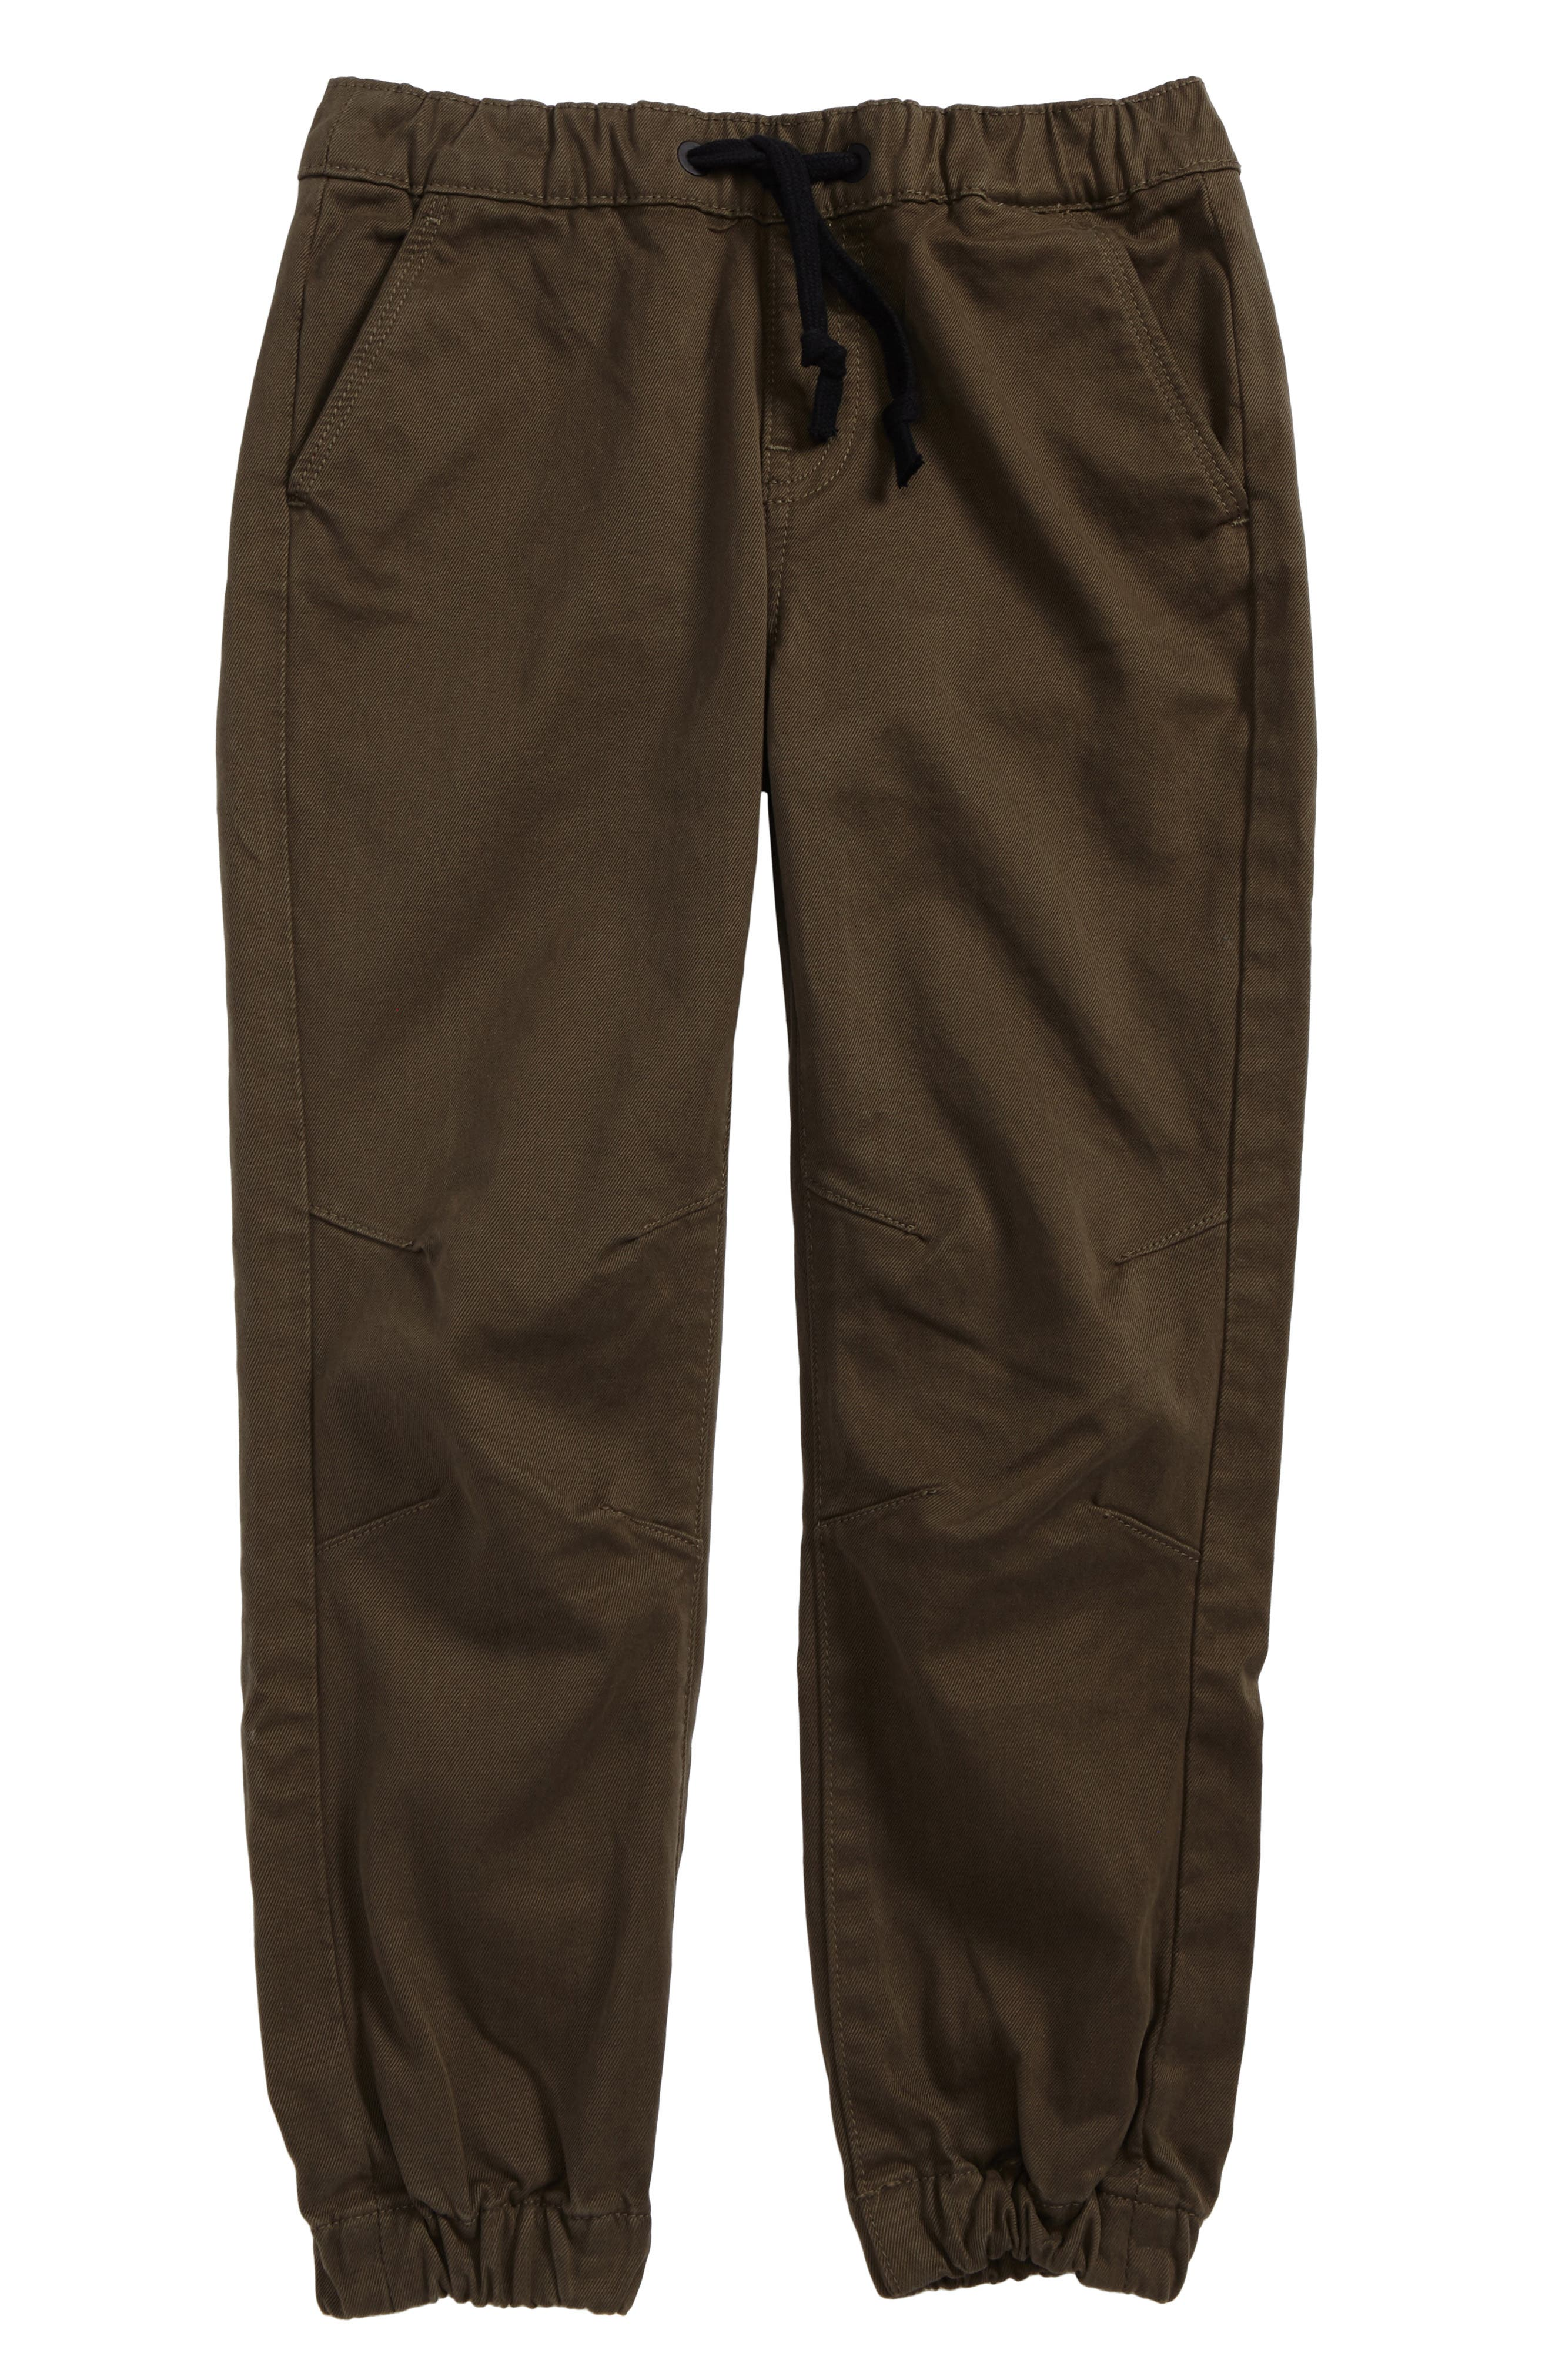 Jackson Jogger Pants,                         Main,                         color, Basin